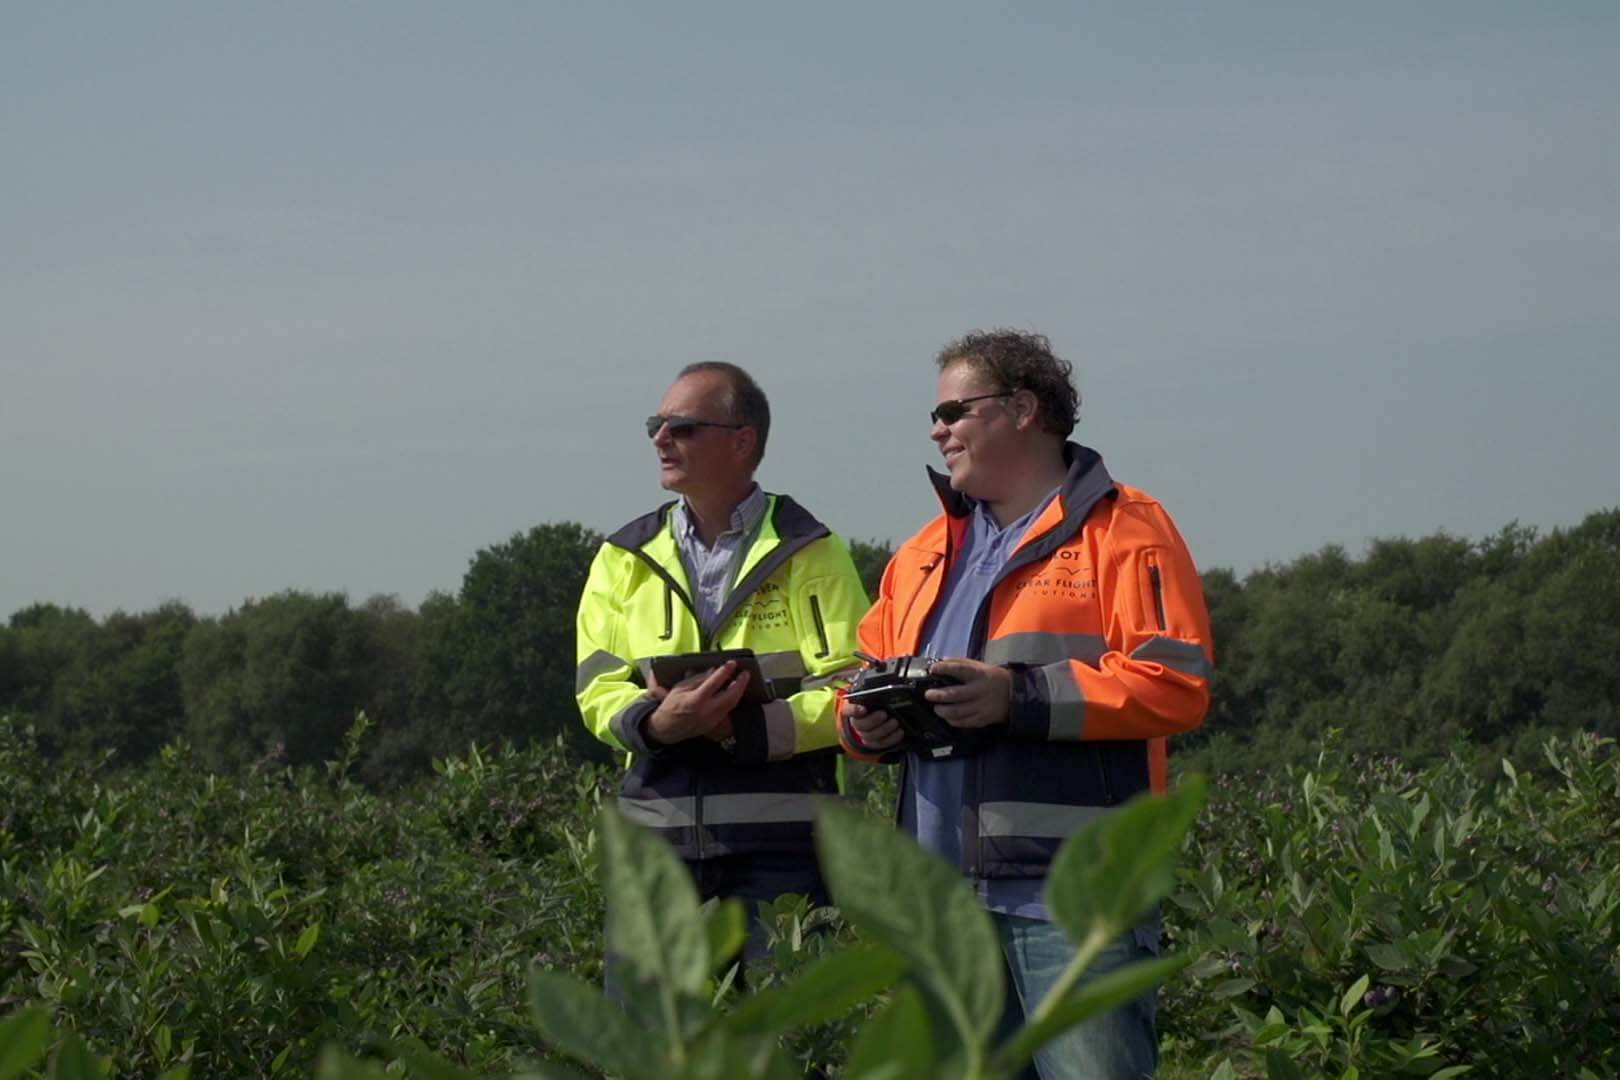 The Drone Bird Company pilots providing wildlife management services in an agricultural field.